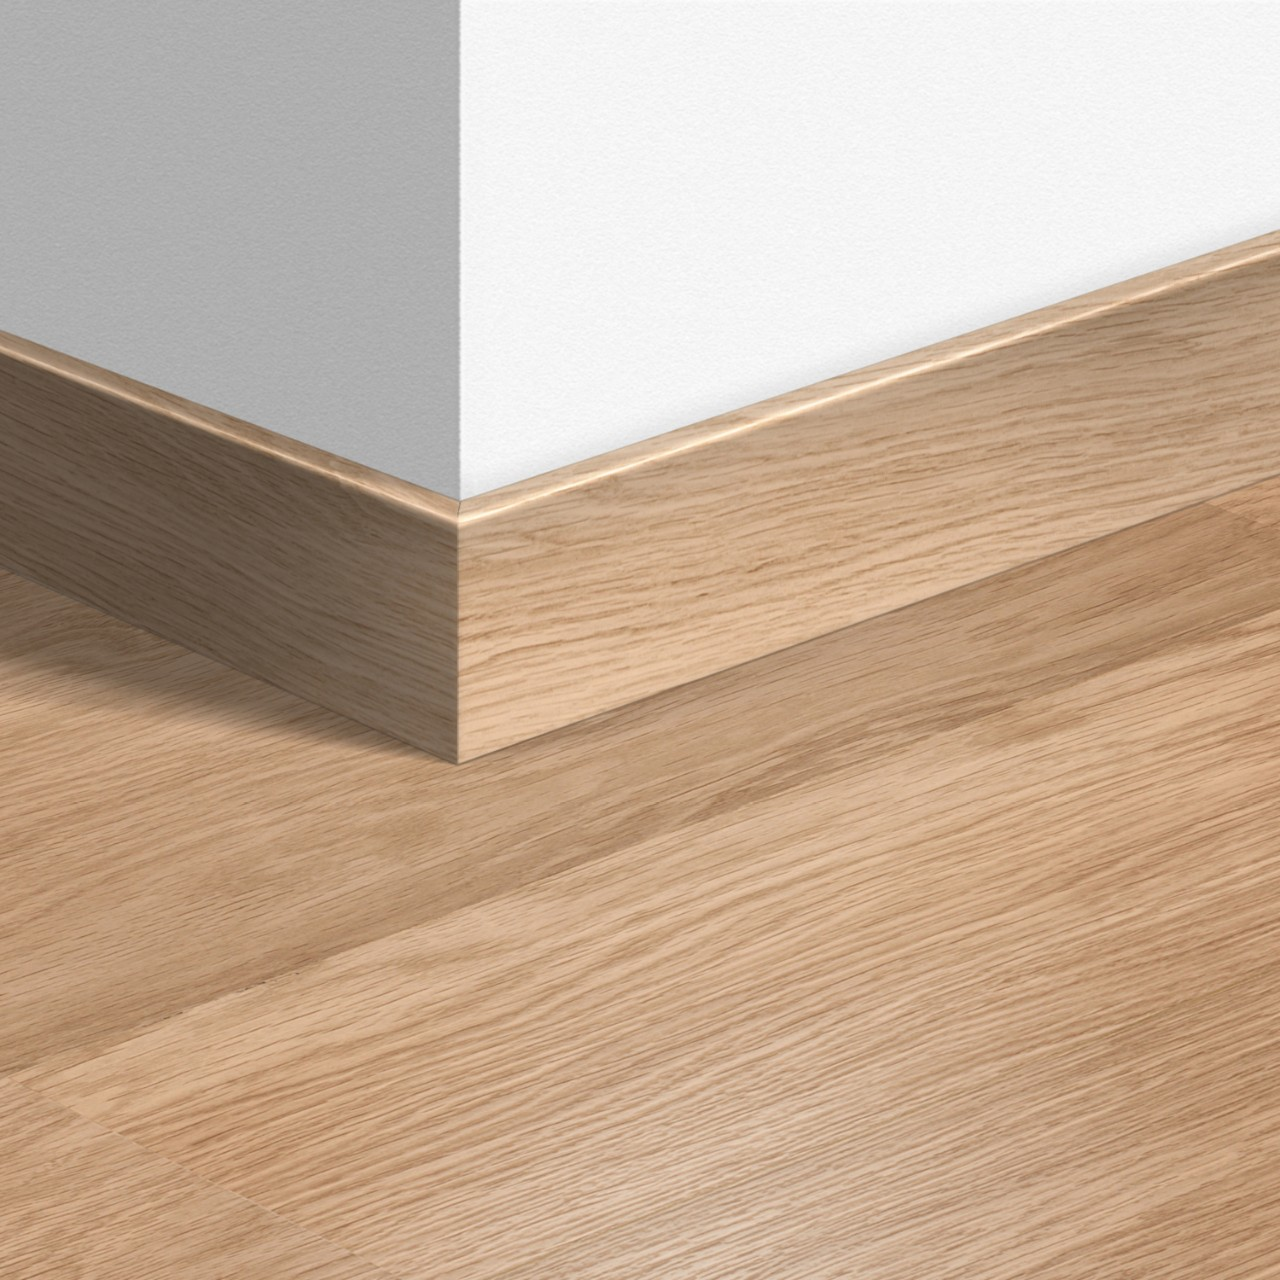 QSPSKR Laminate Accessories White varnished oak QSPSKR00915